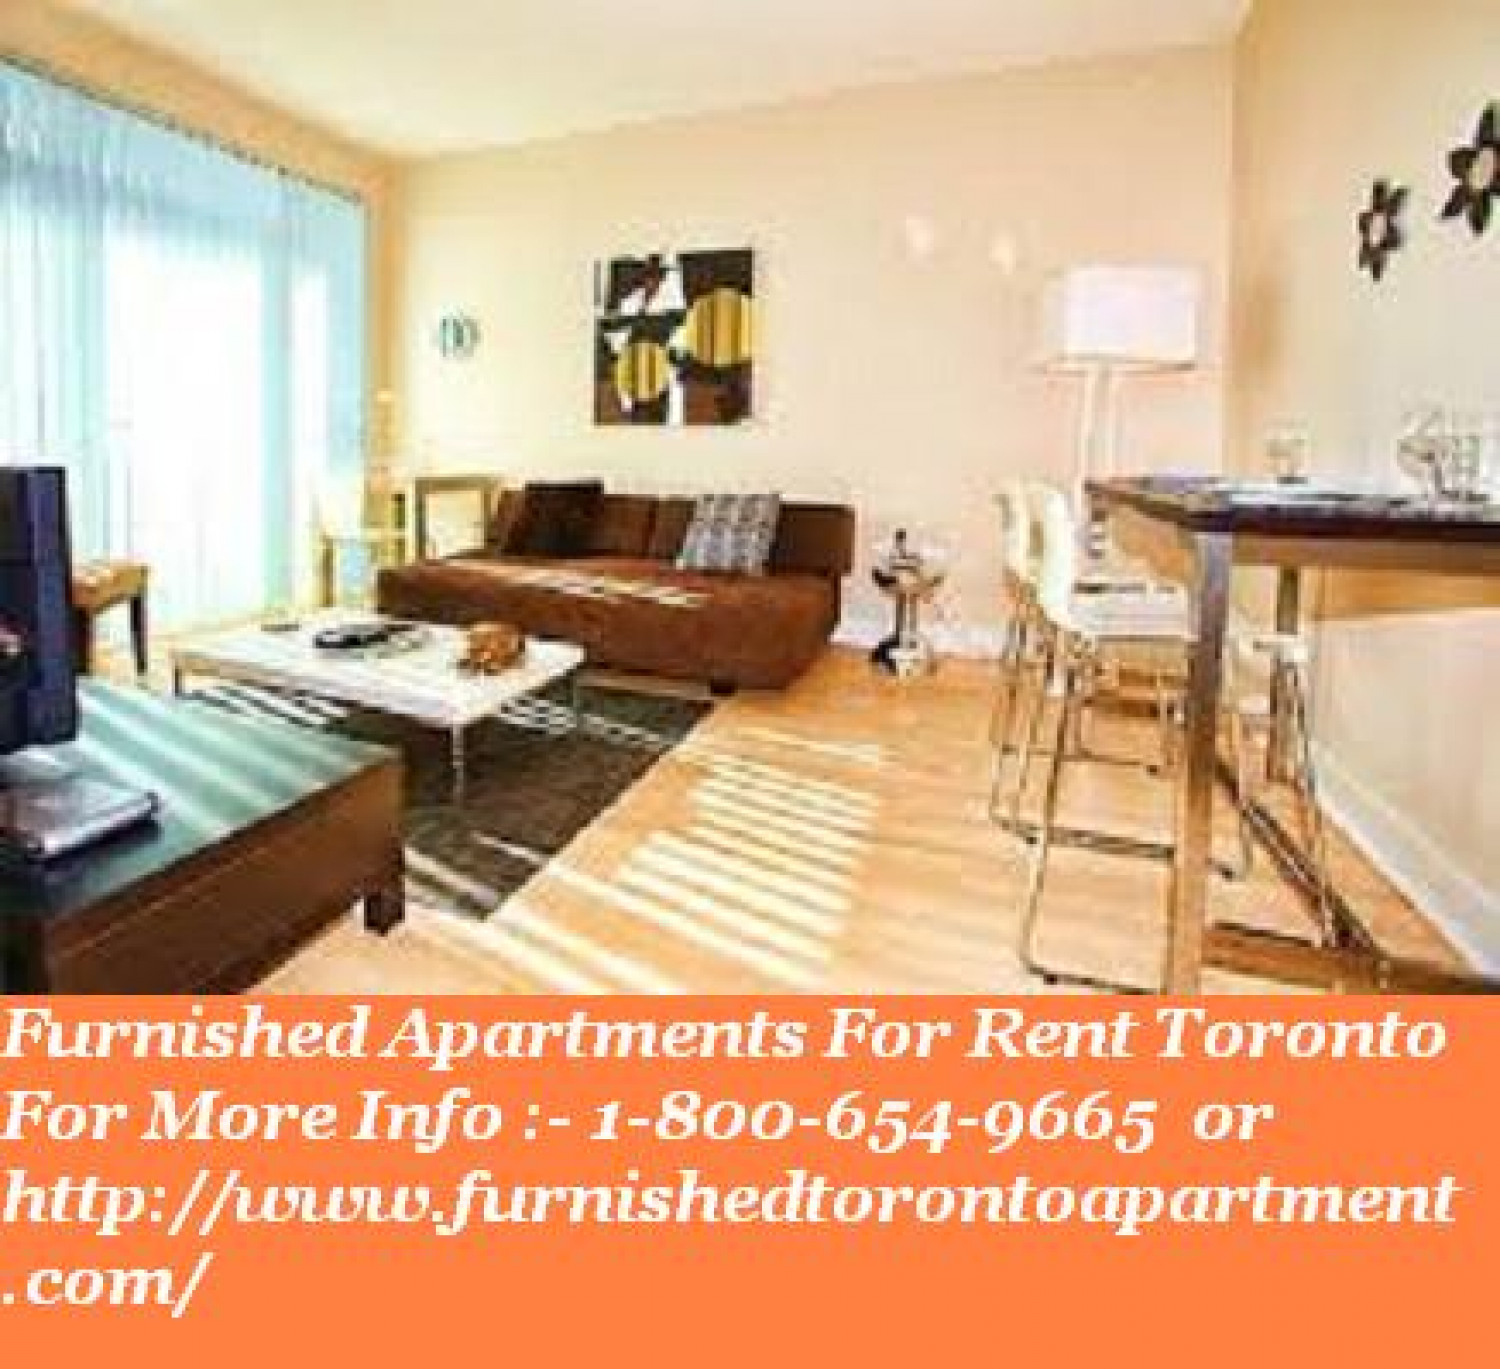 Apartments For Rent Toronto: Furnished Apartments For Rent Toronto Infographic